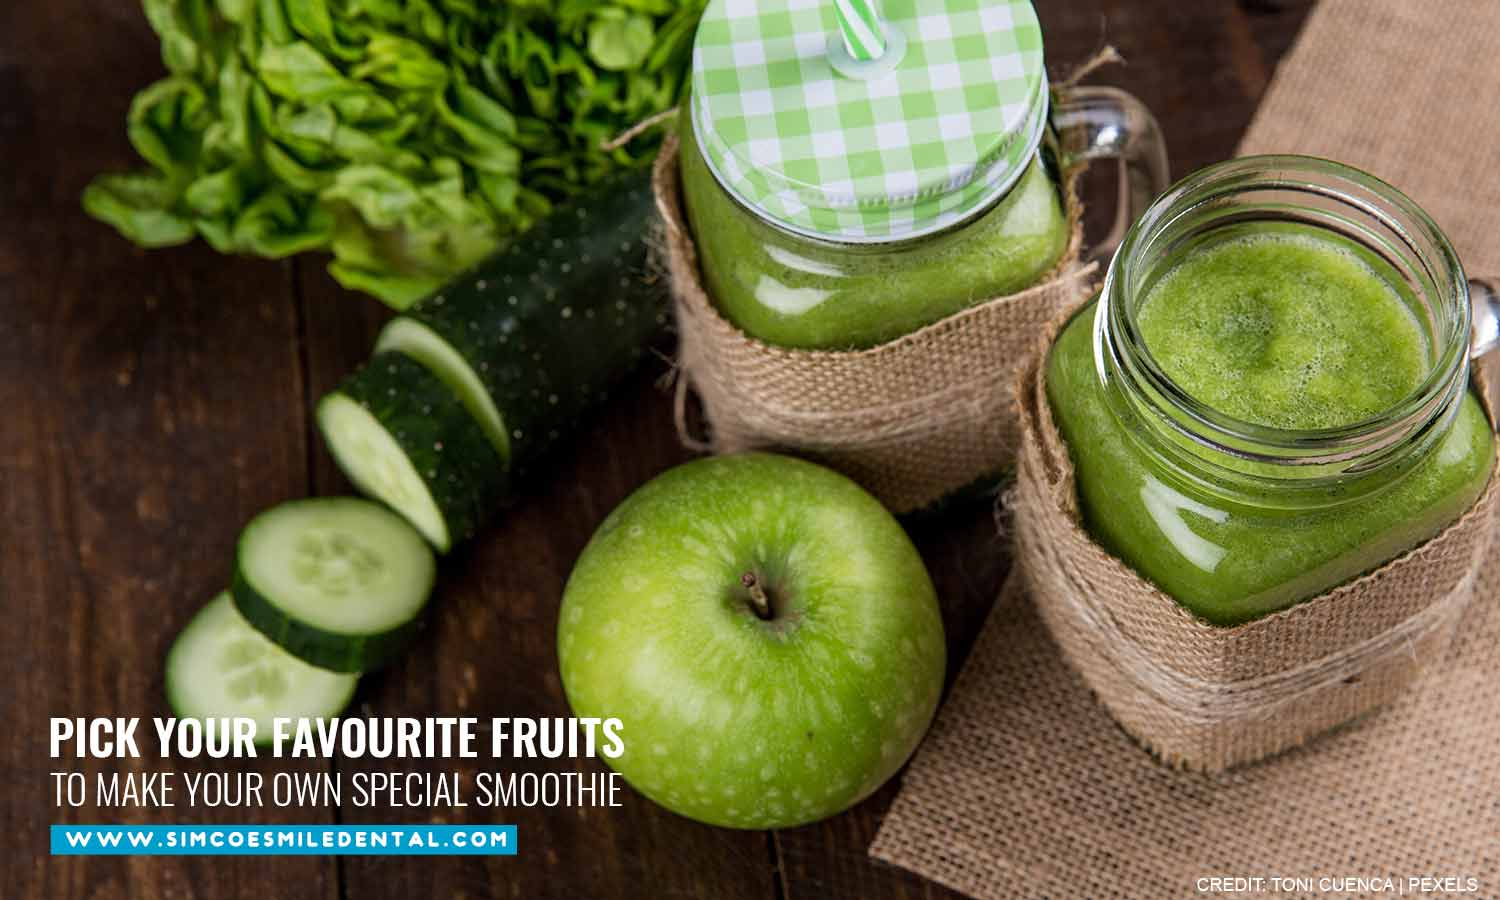 Pick-your-favourite-fruits-to-make-your-own-special-smoothie 9 Easiest Foods for New Braces